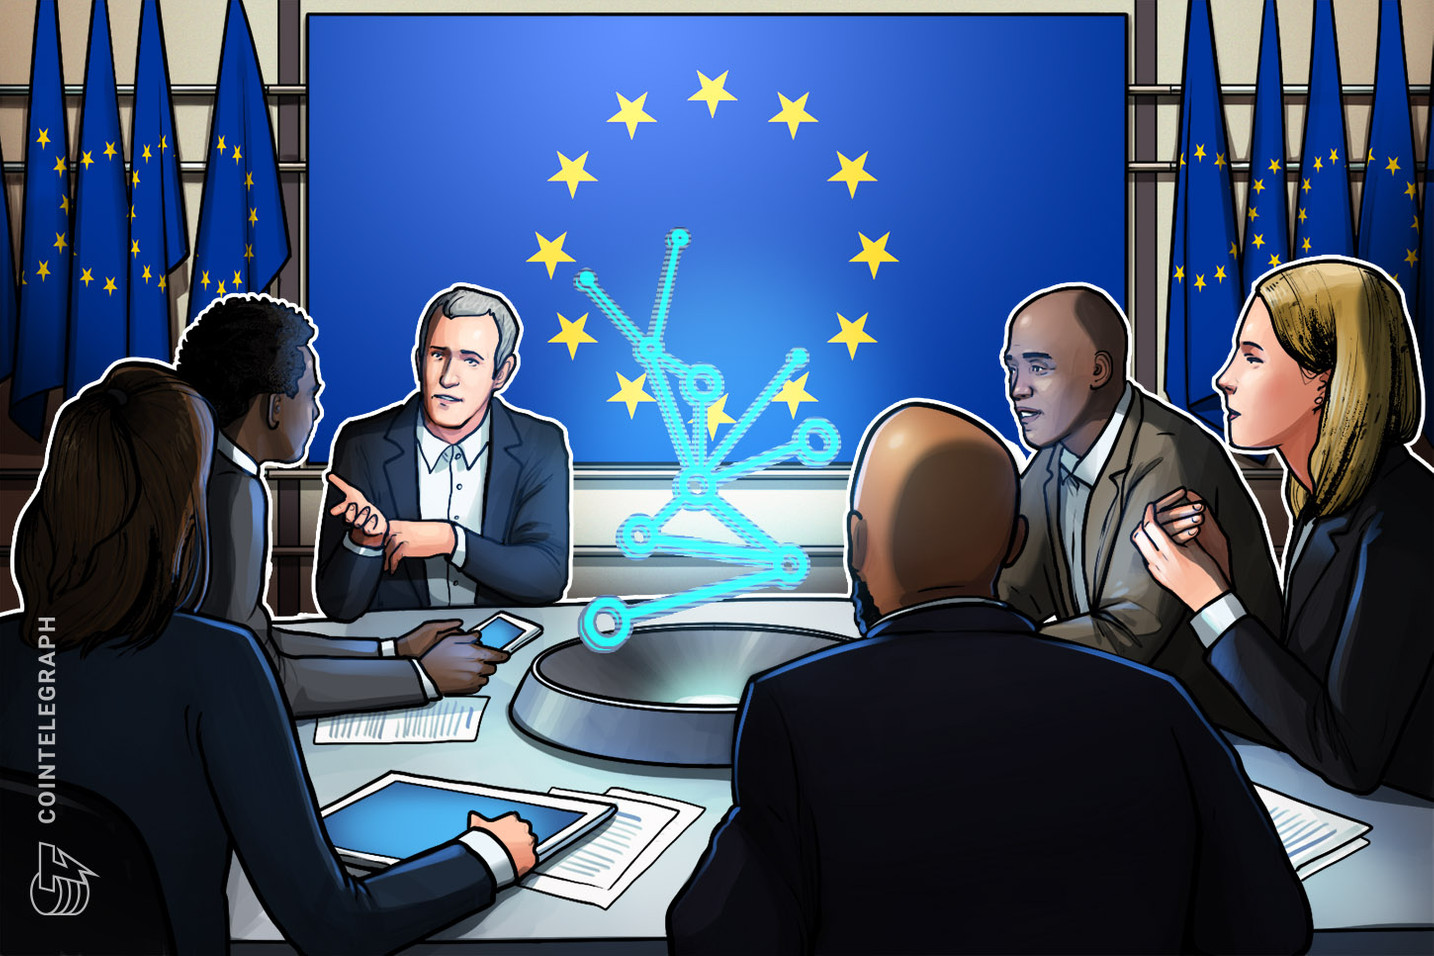 Blockchain industry raises concerns over EC's proposed crypto regulations